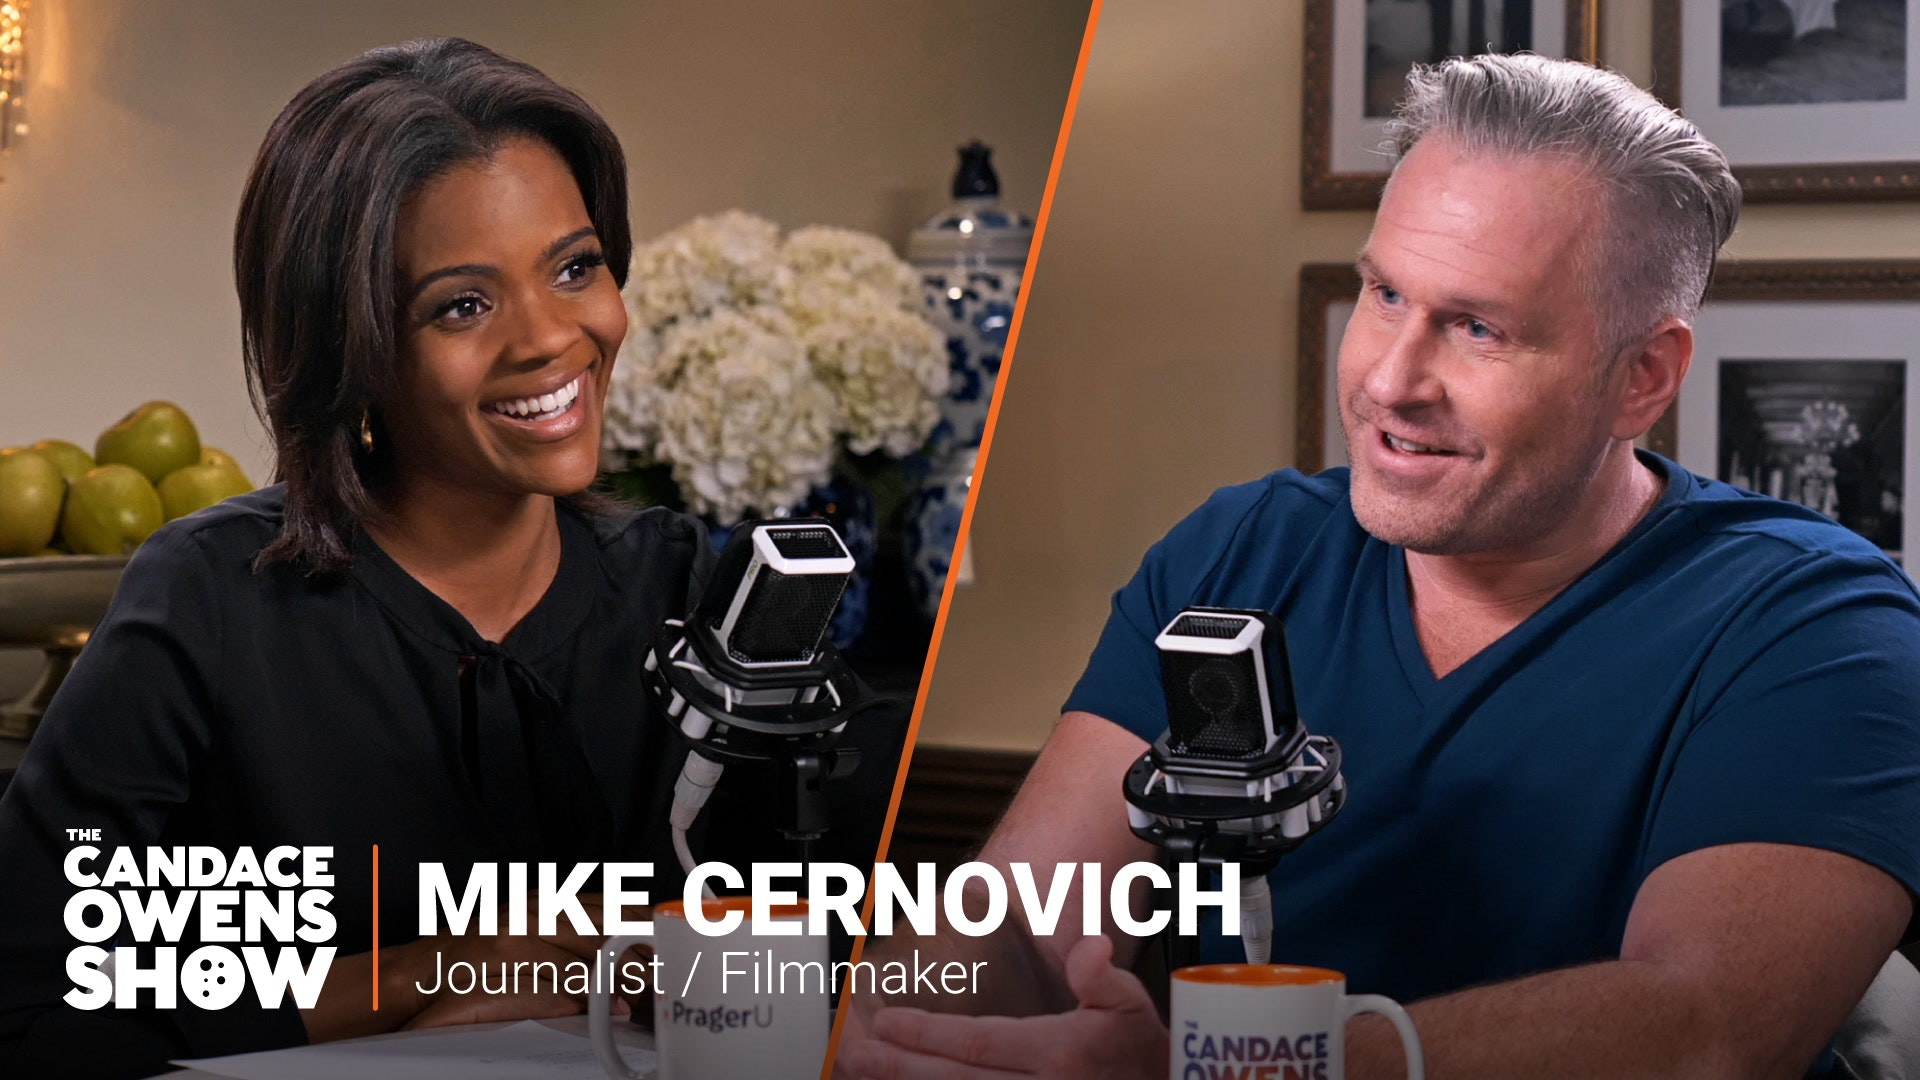 The Candace Owens Show: Mike Cernovich